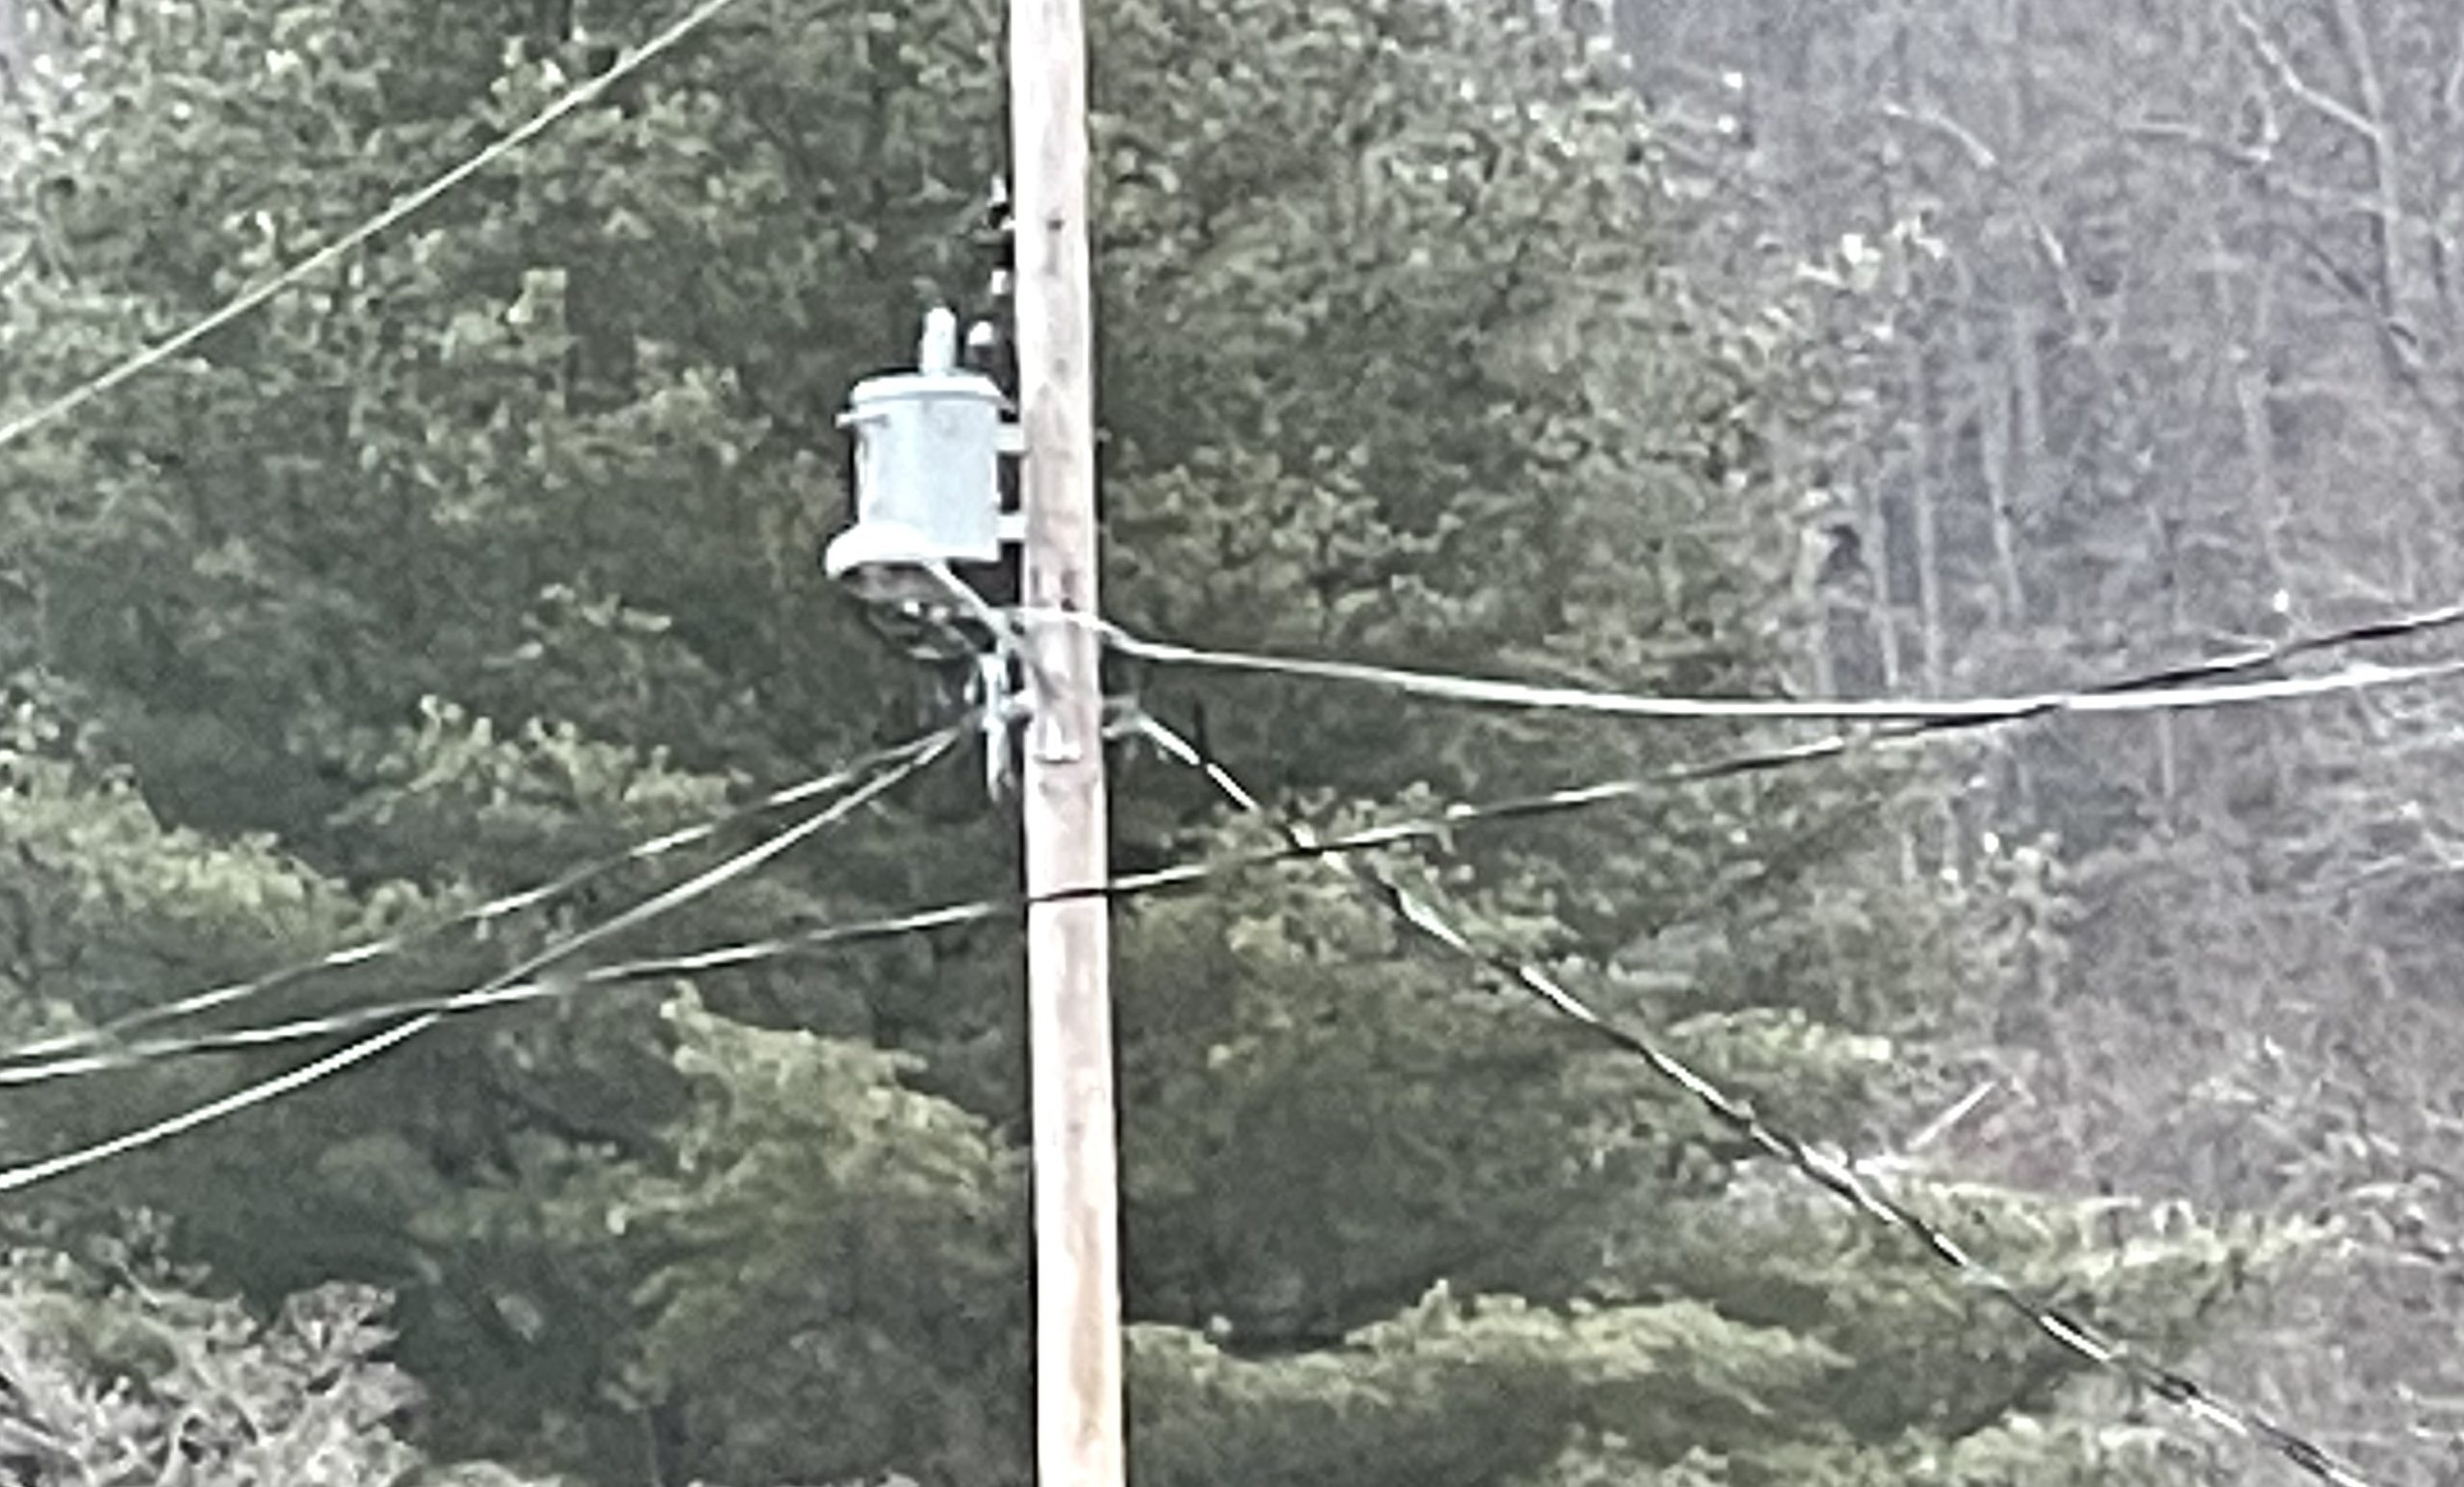 Number of outages falls, but worst of storm still threatens